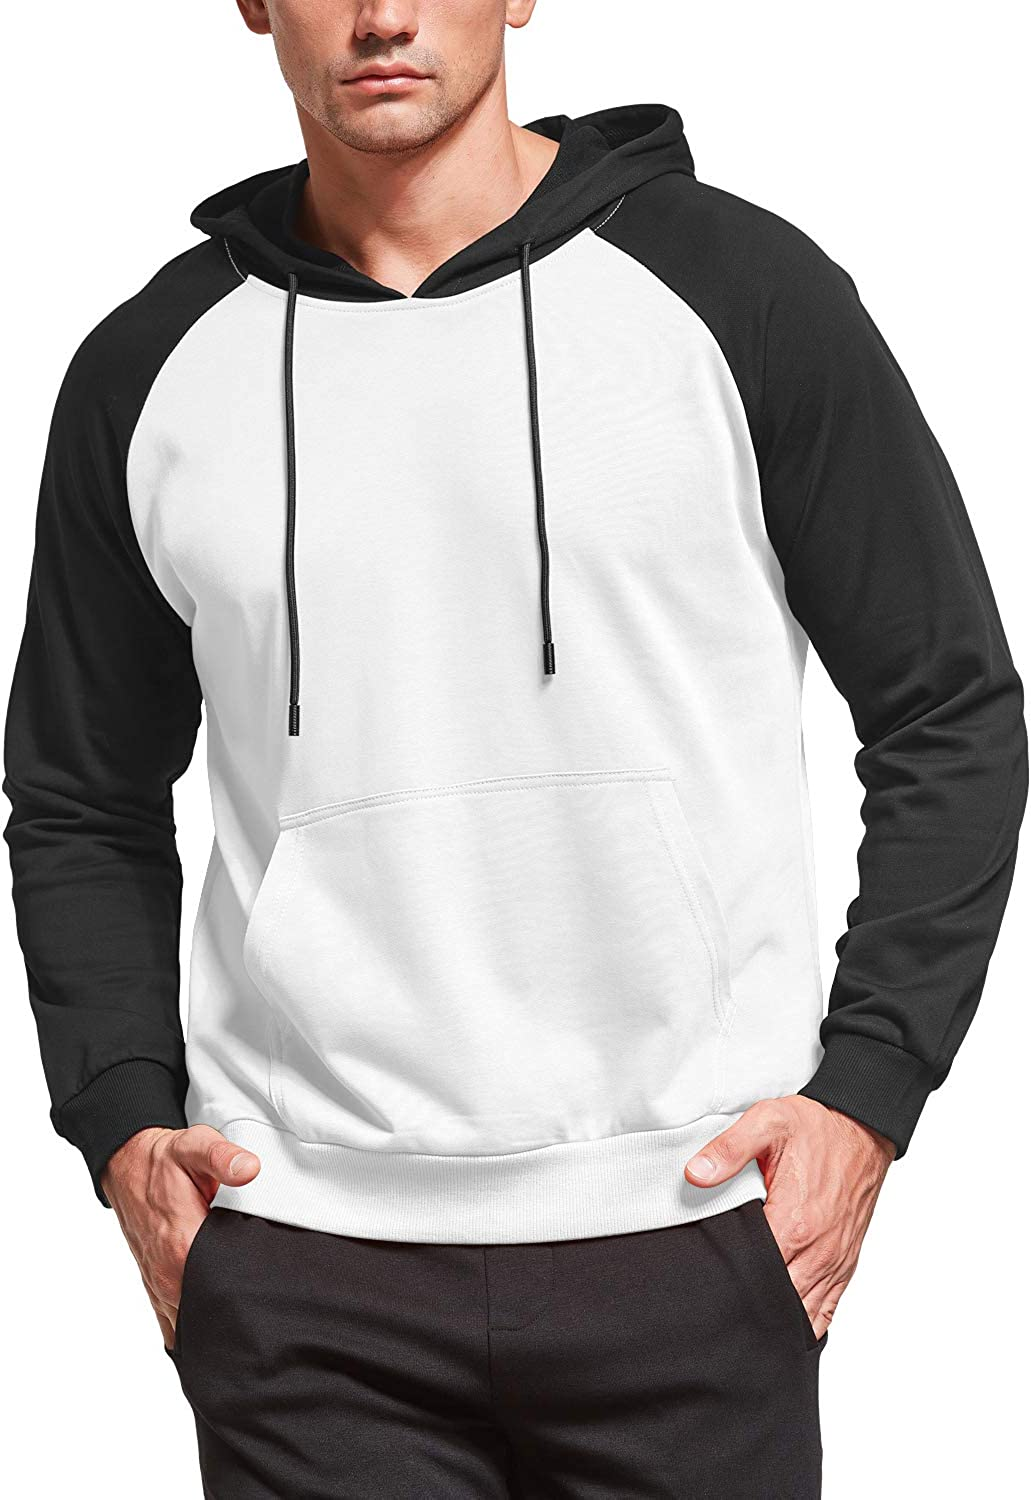 MLANM Mens Casual 100% quality warranty Ranking TOP17 Pullover Hoodie Sleeve Swea Long Cotton Hooded